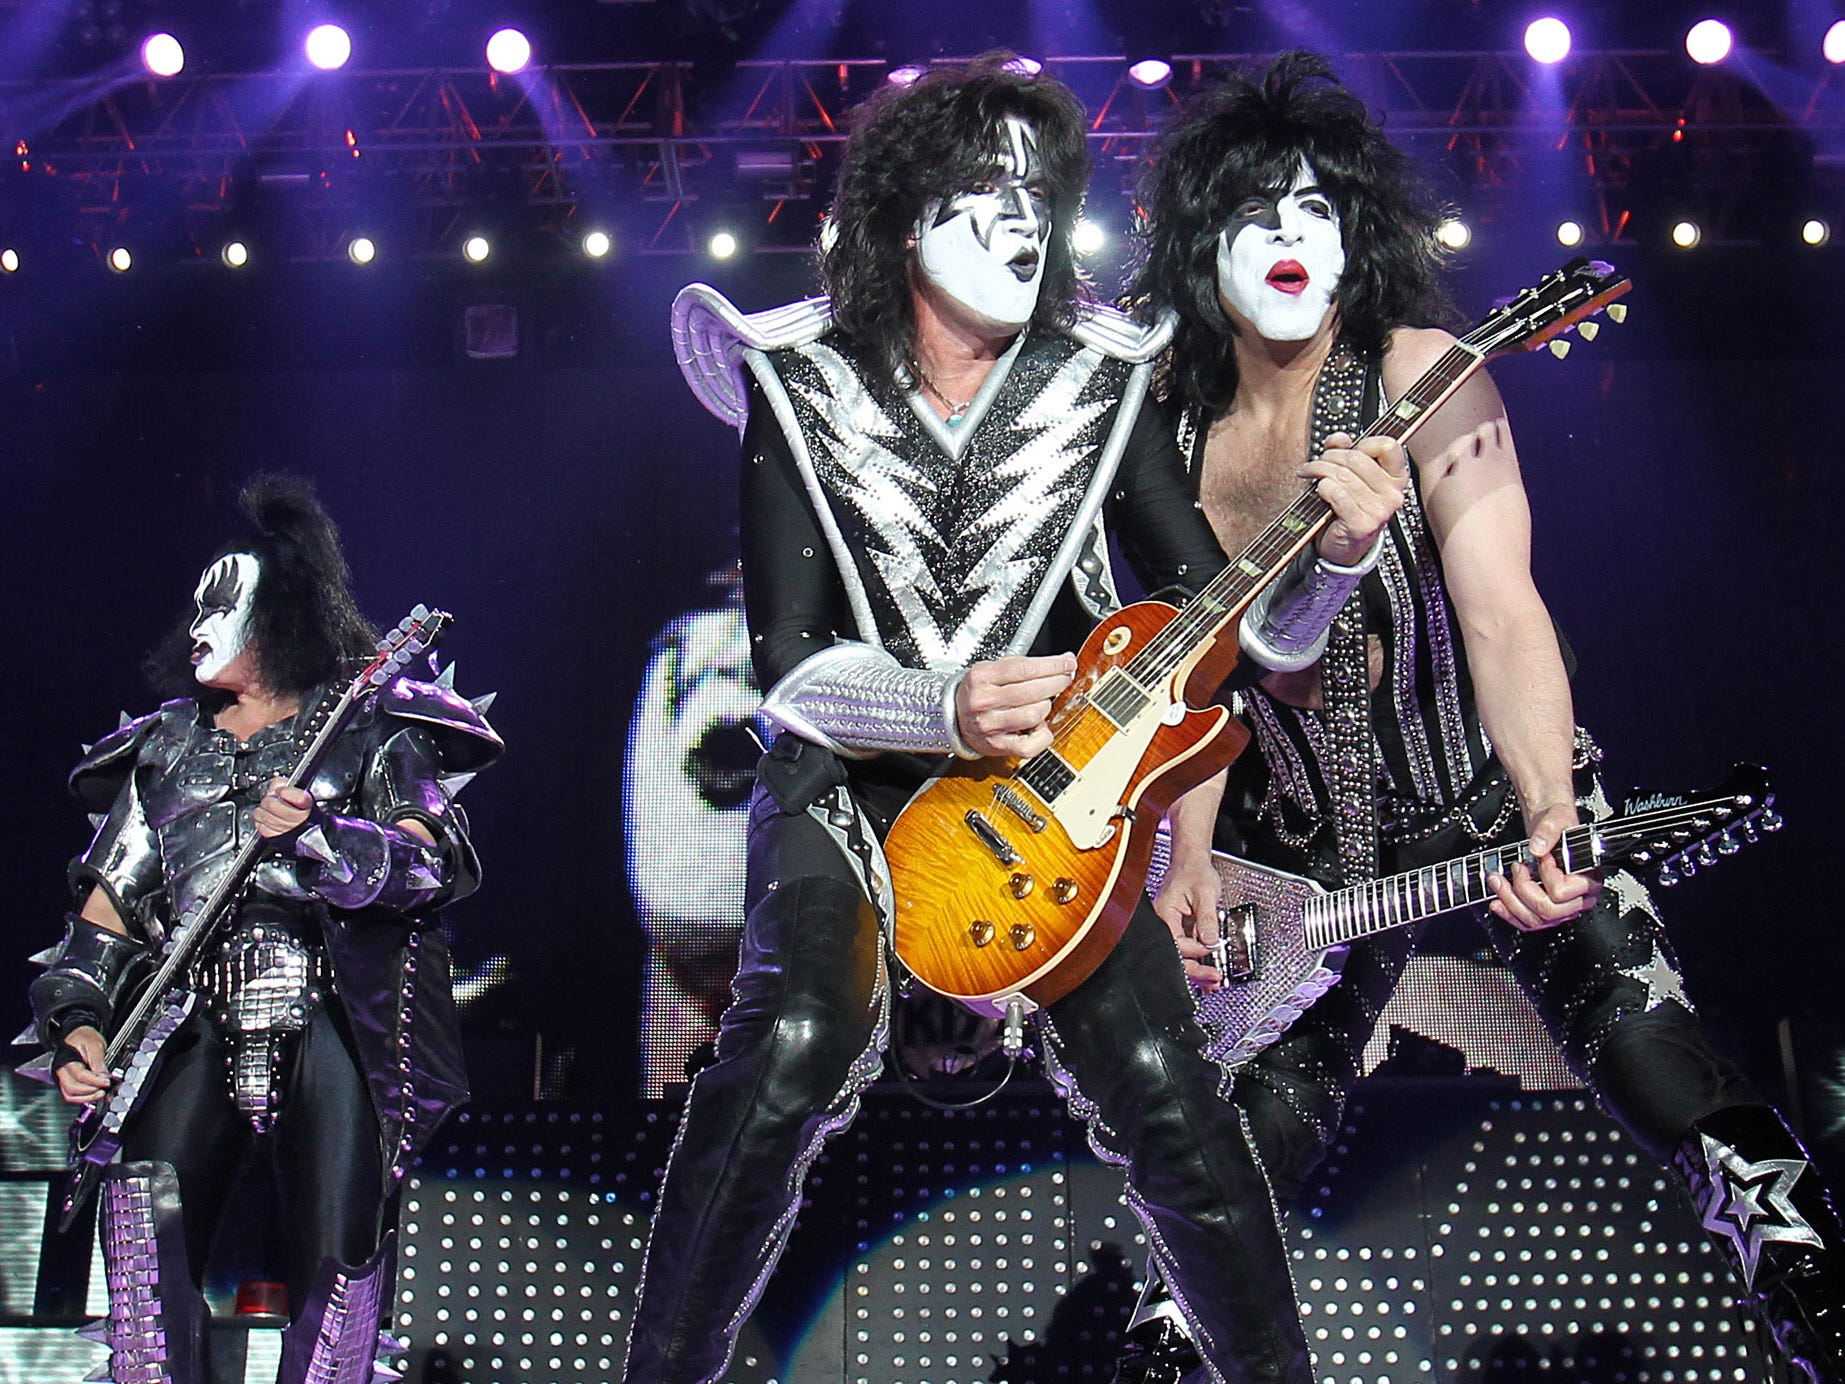 """(L-R) Gene Simmons, Tommy Thayer and Paul Stanley of the US hard-rock band Kiss perform on stage on May 25, 2010 in Leipzig, eastern Germany. It was the first concert of the band's German tour titled """"Sonic Boom Over Europe"""".     AFP PHOTO    DDP/SEBASTIAN WILLNOW    GERMANY OUT (Photo credit should read SEBASTIAN WILLNOW/AFP/Getty Images)"""